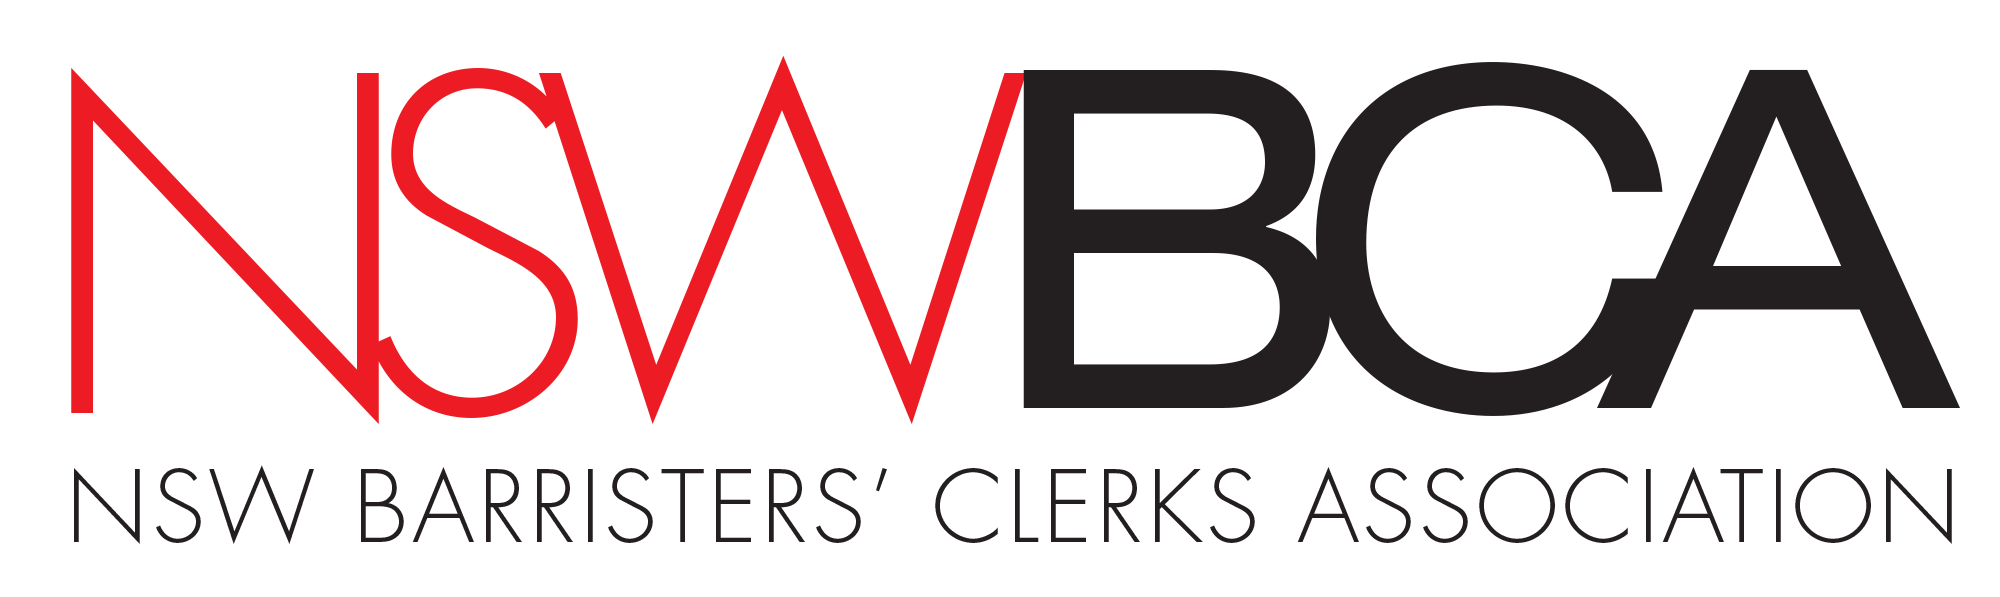 NSW Barristers Clerks Association | NSWBCA